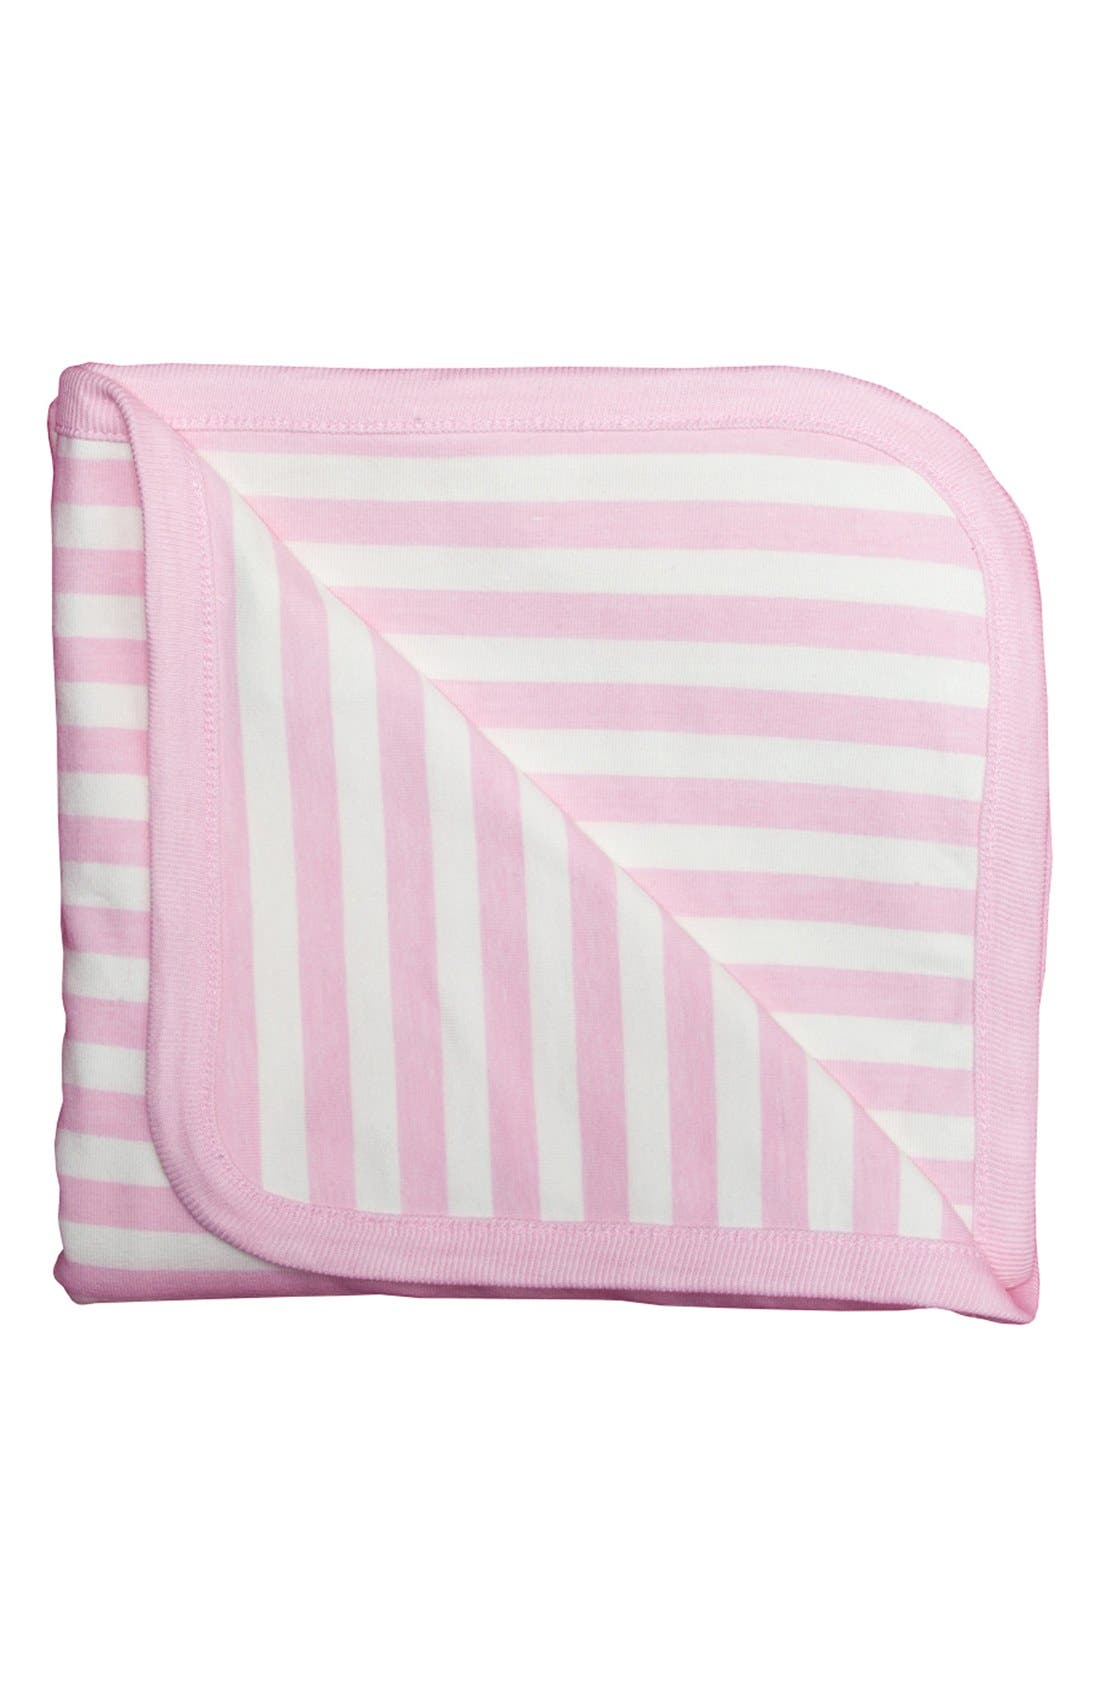 Monica + Andy 'Coming Home' Organic Cotton Blanket